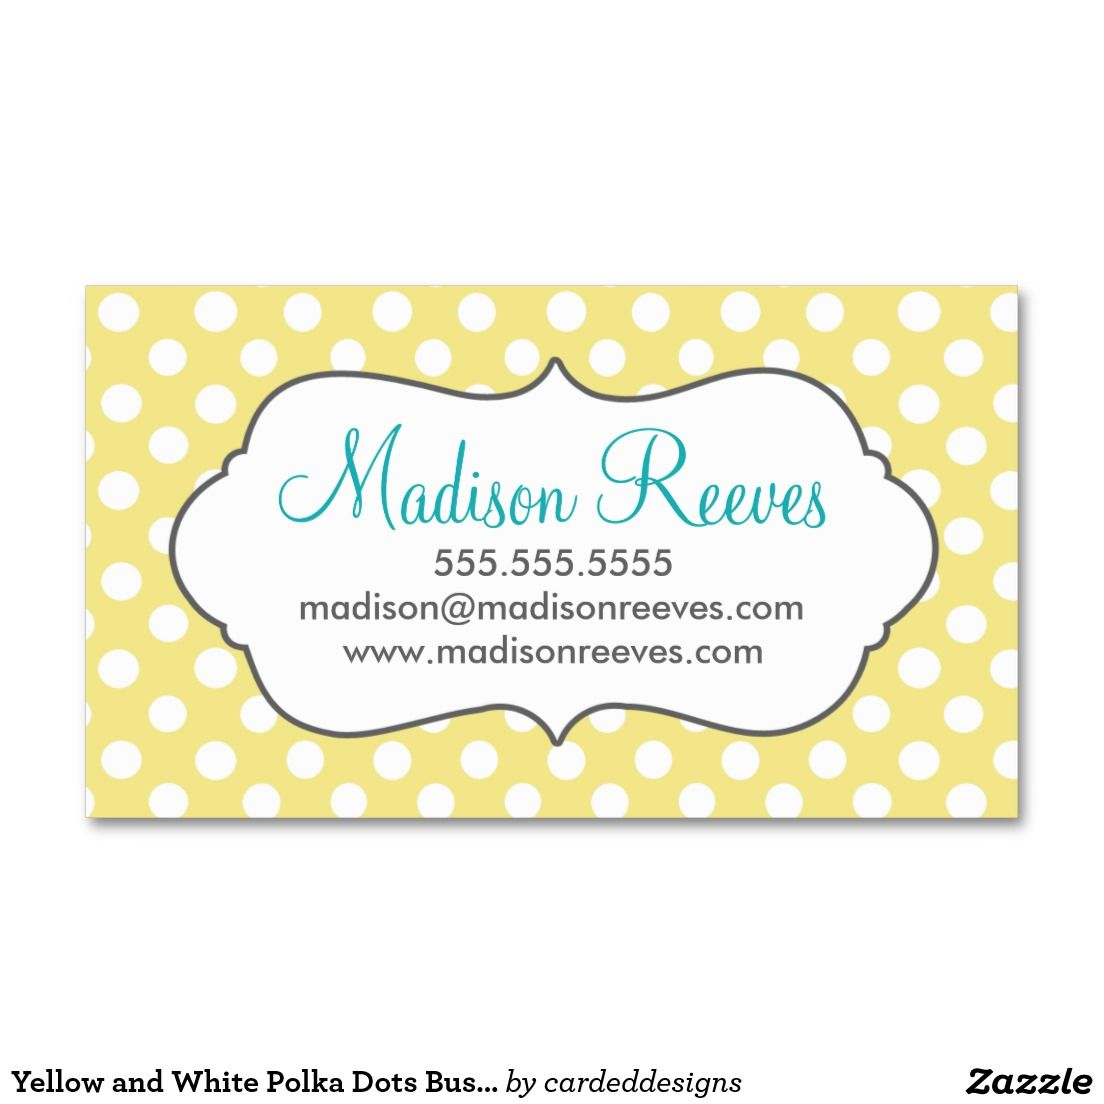 Yellow and White Polka Dots Business Card Template | Card templates ...